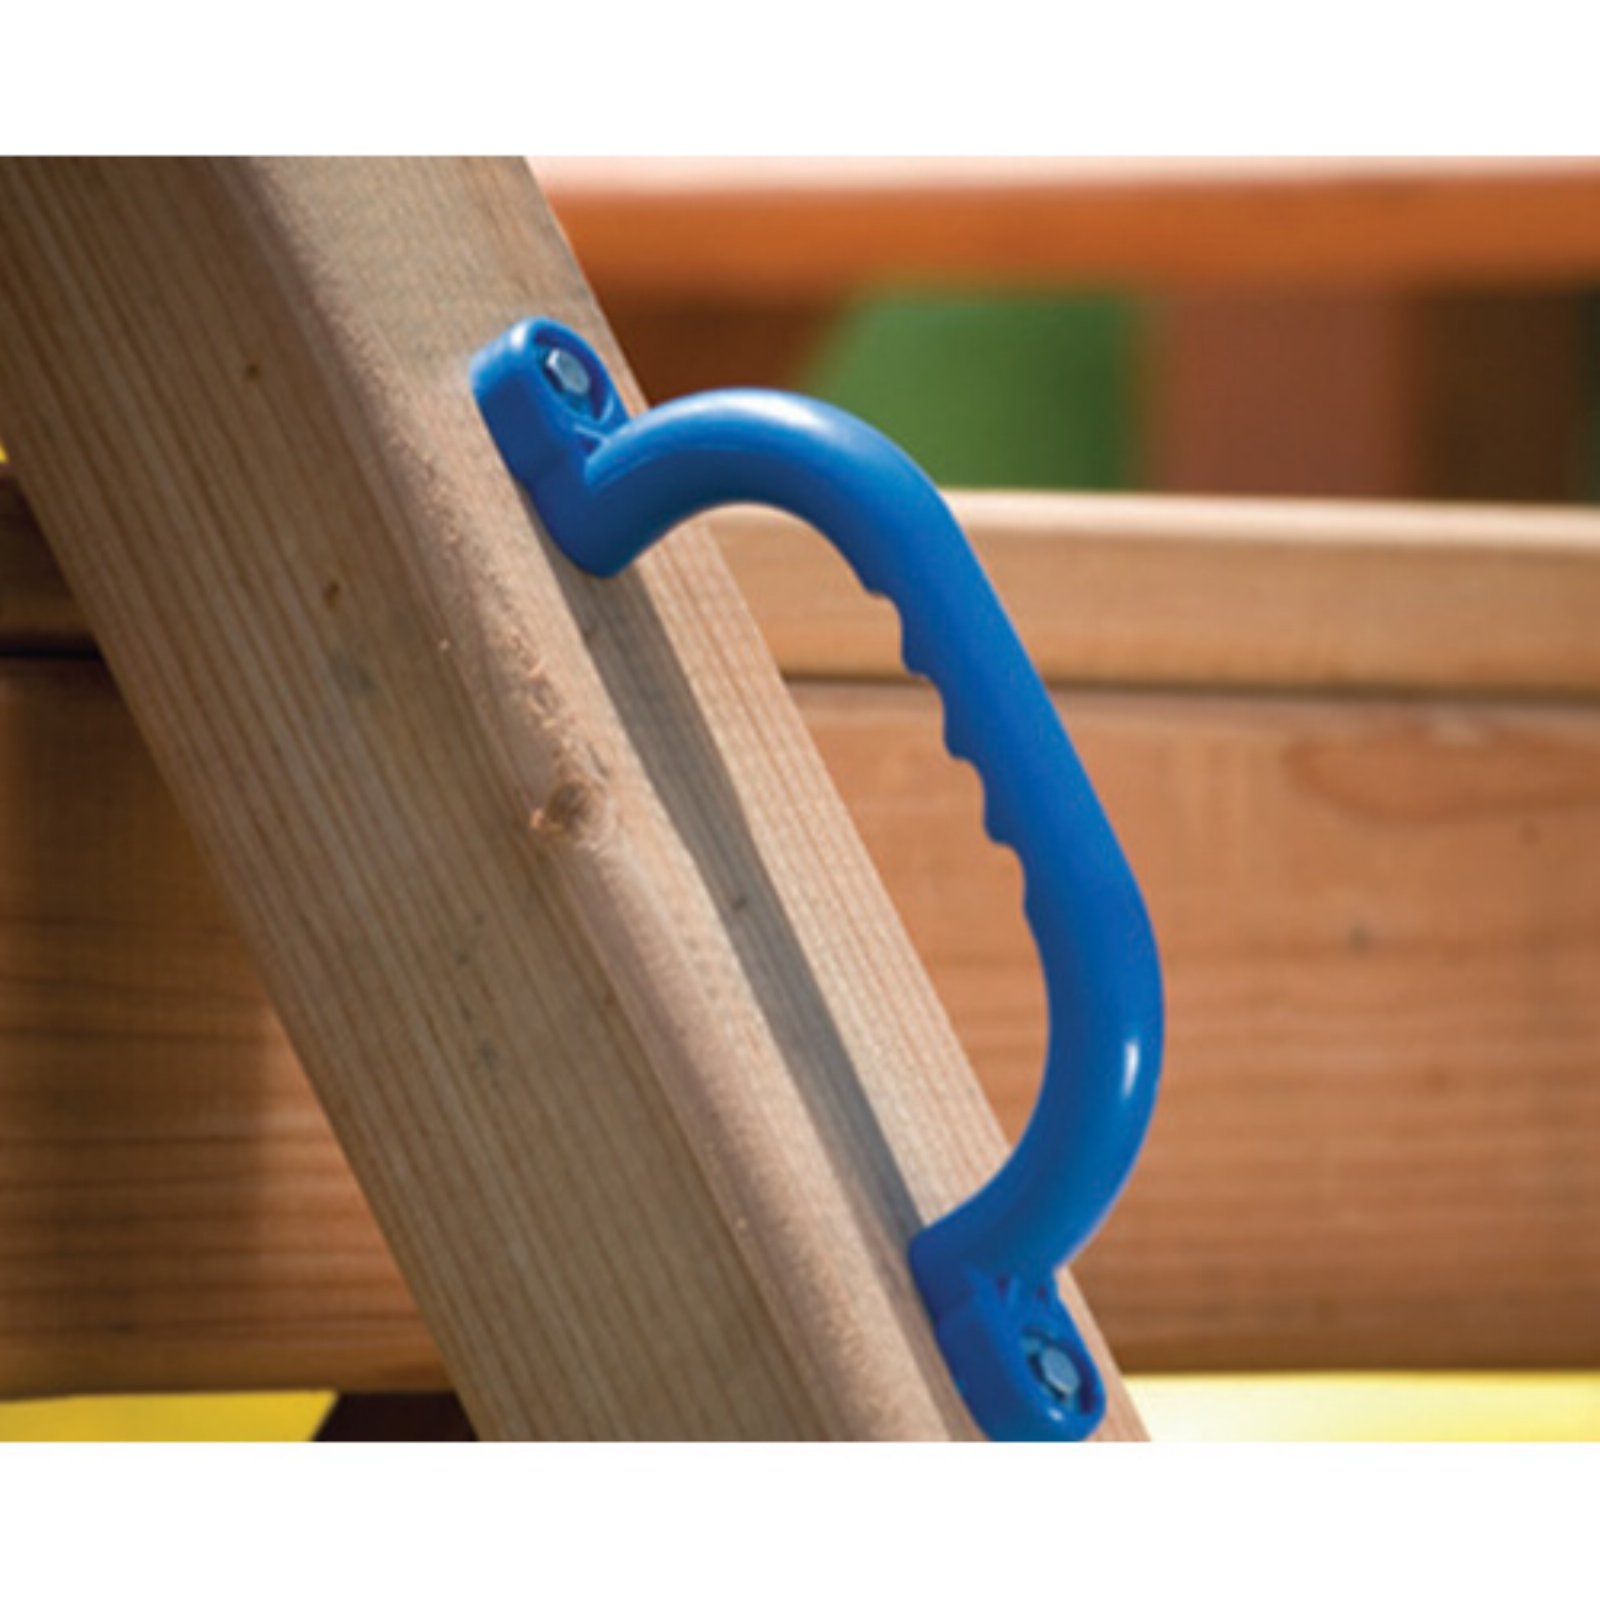 Kids Creations Safety Handles - Set of 2